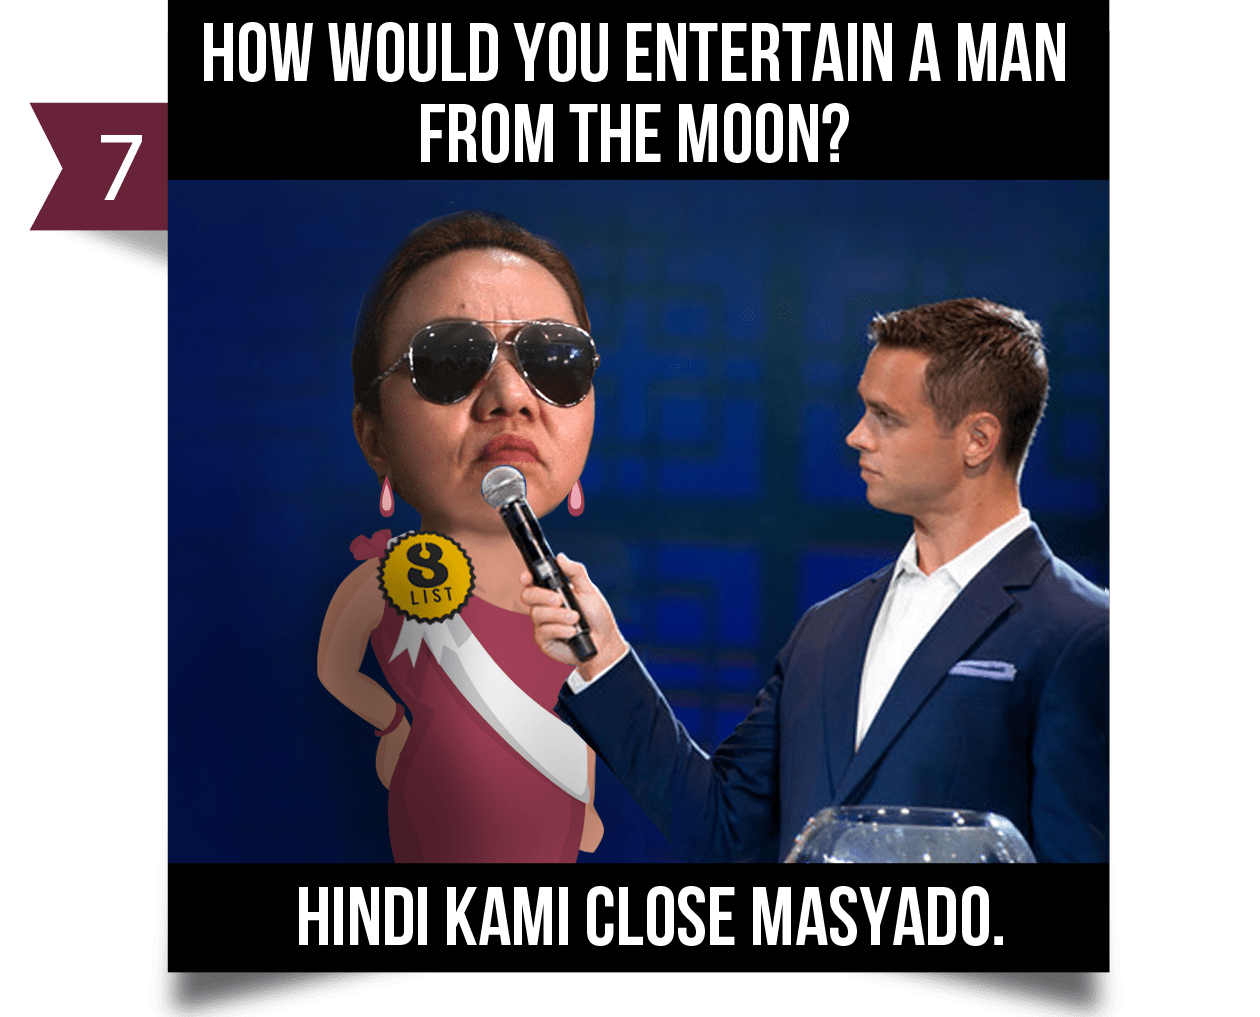 7. How would you entertain a man from the moon?HINDI KAMI CLOSE MASYADO.